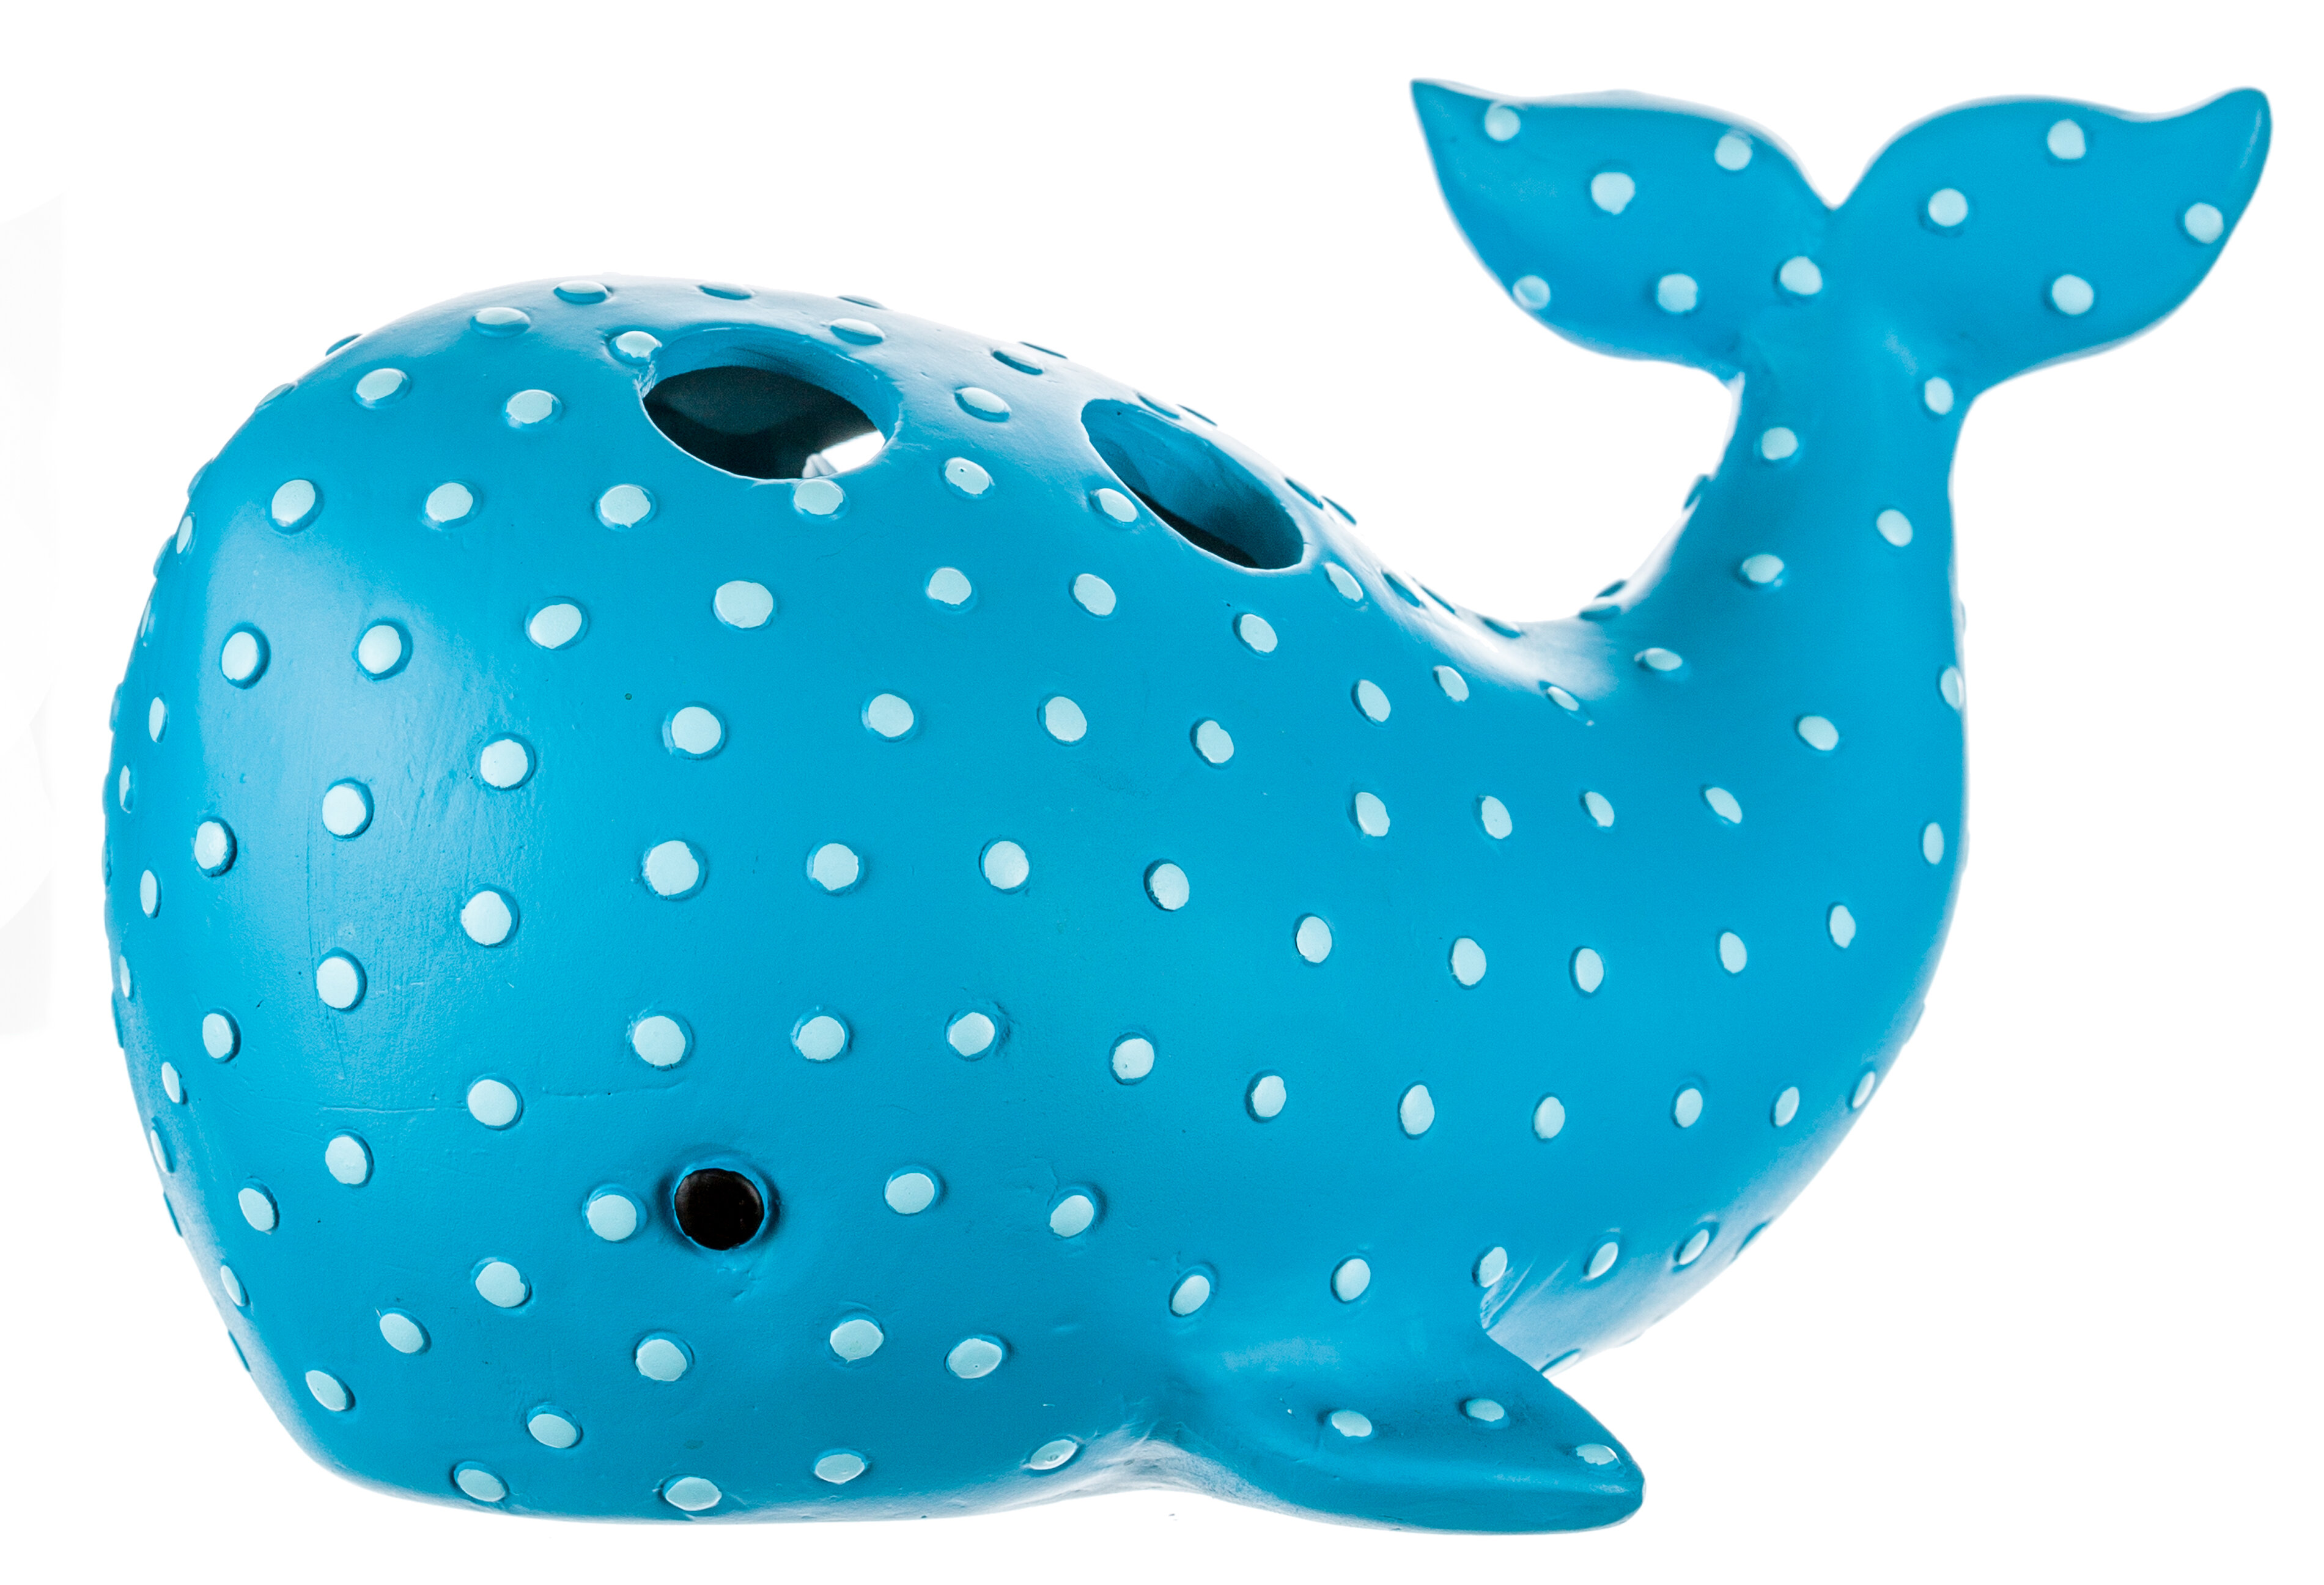 Rosecliff Heights Blanca Ahoy Whale Toothbrush Holder Wayfair